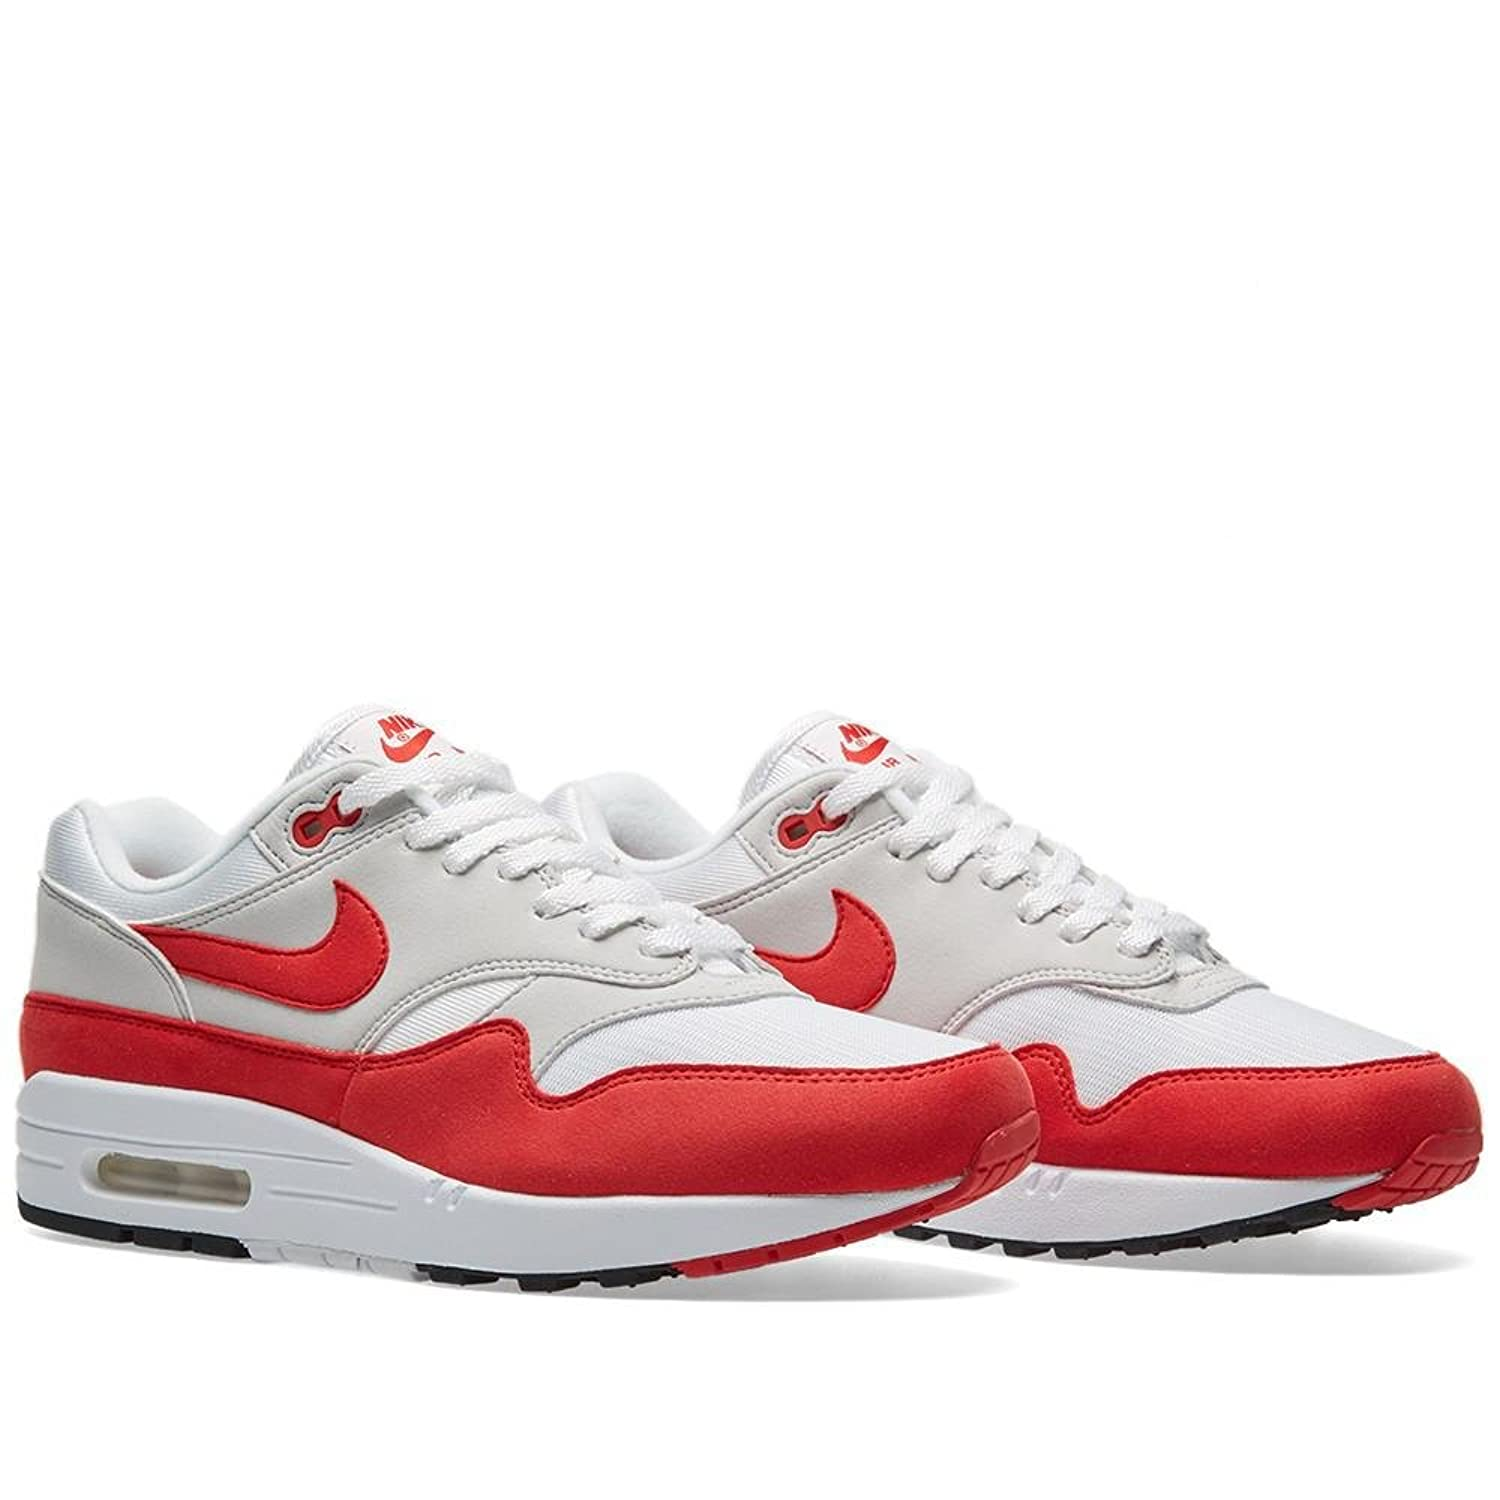 NIKE AIR MAX 1 ANNIVERSARY 'ANNIVERSARY RED' - 908375-100: Amazon.ca: Shoes  & Handbags